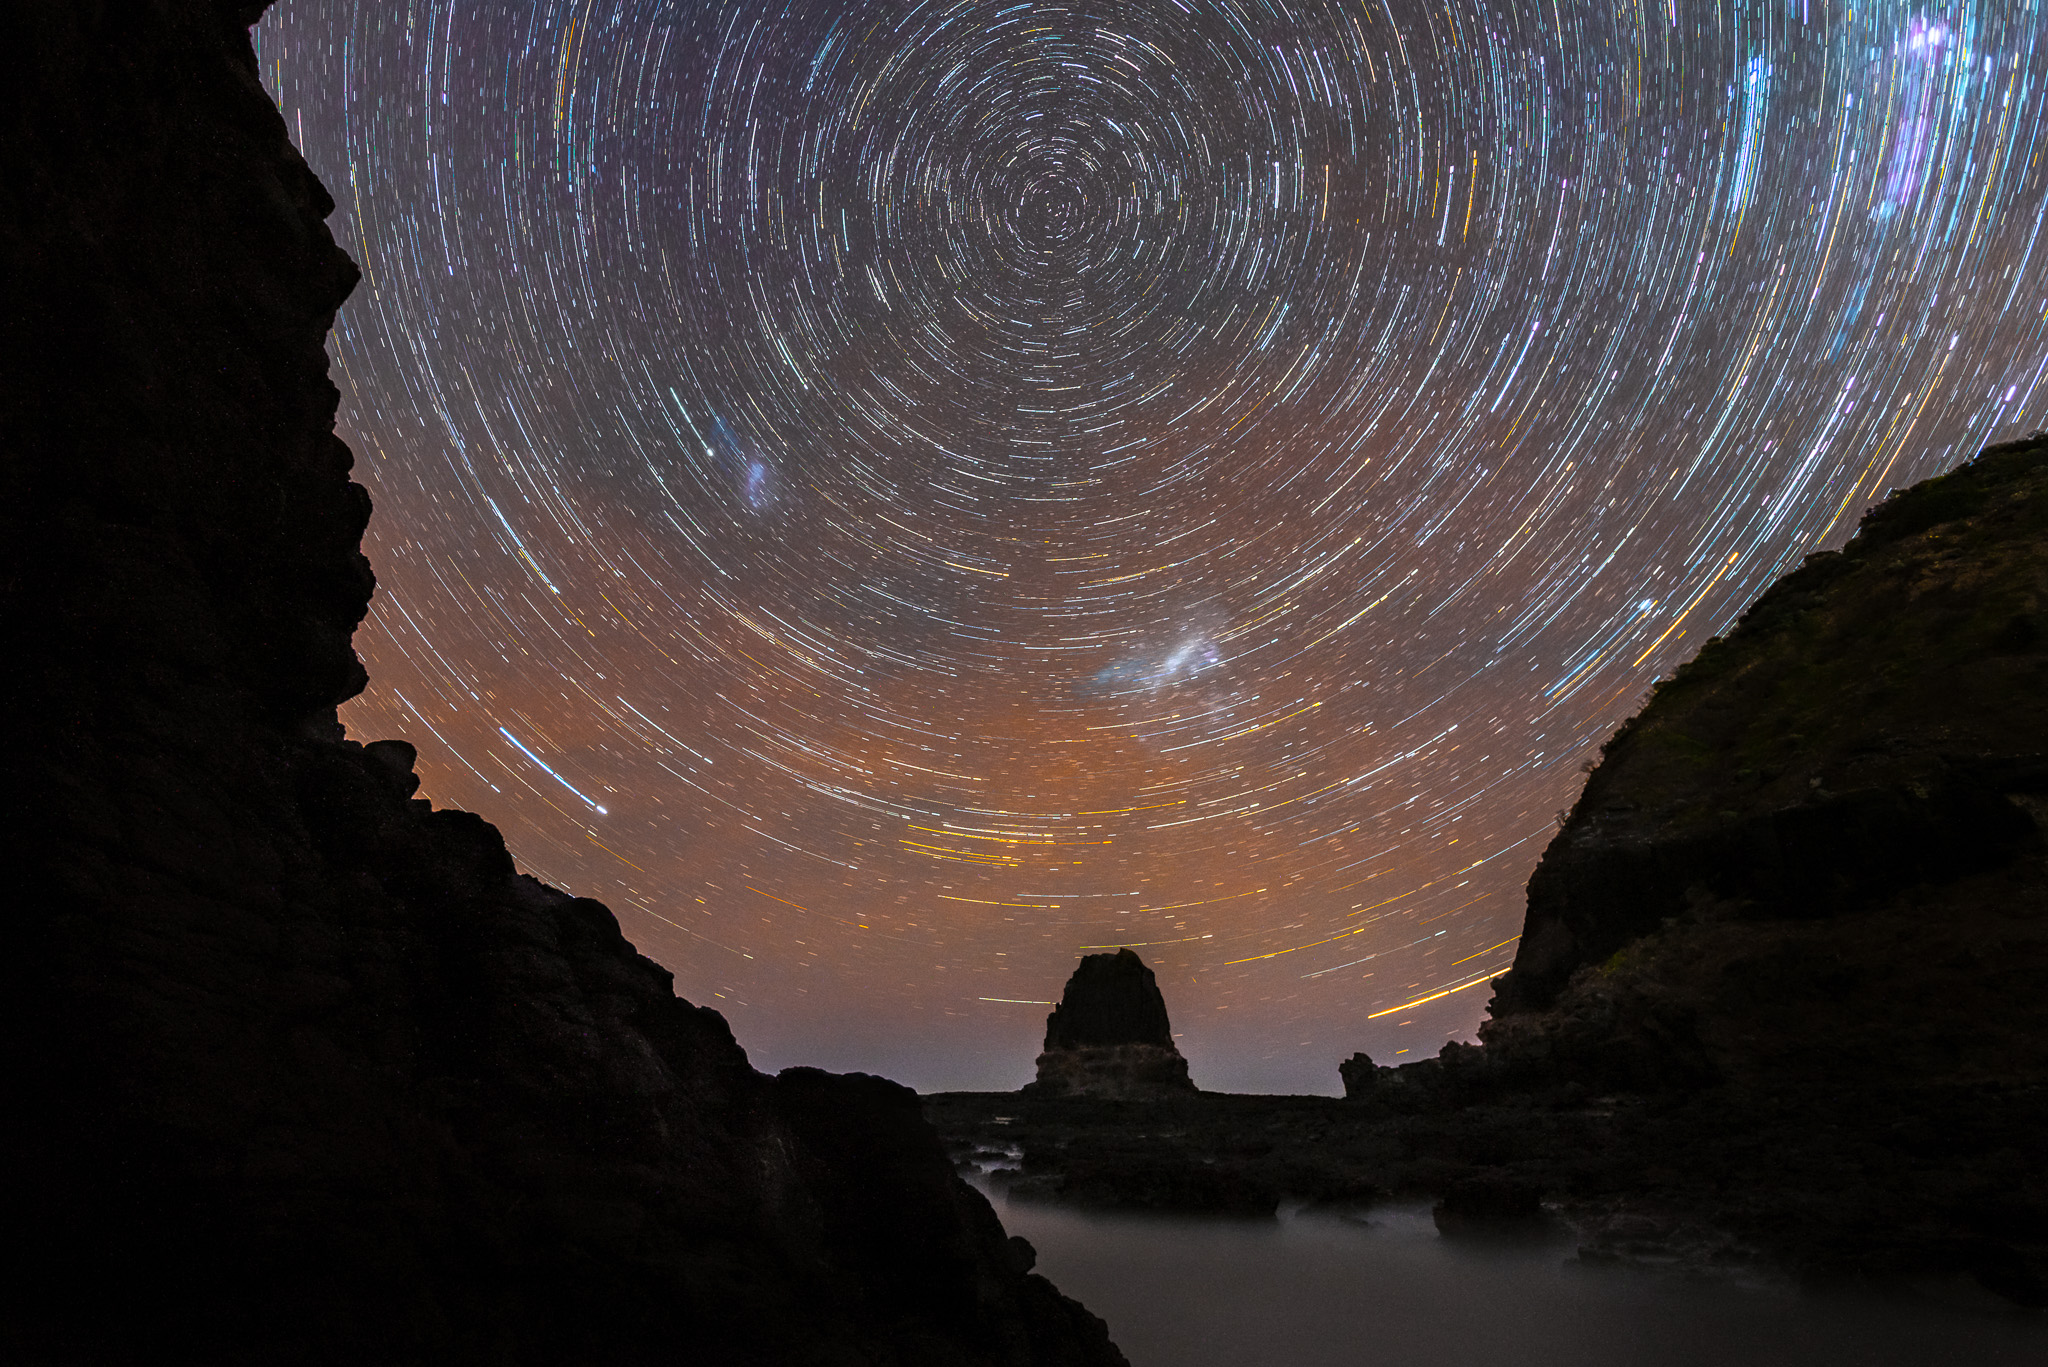 Star trails over Pulpit Rock at Cape Schanck (Mornington Peninsula, Victoria, Australia) - Photo by Paul Tadday